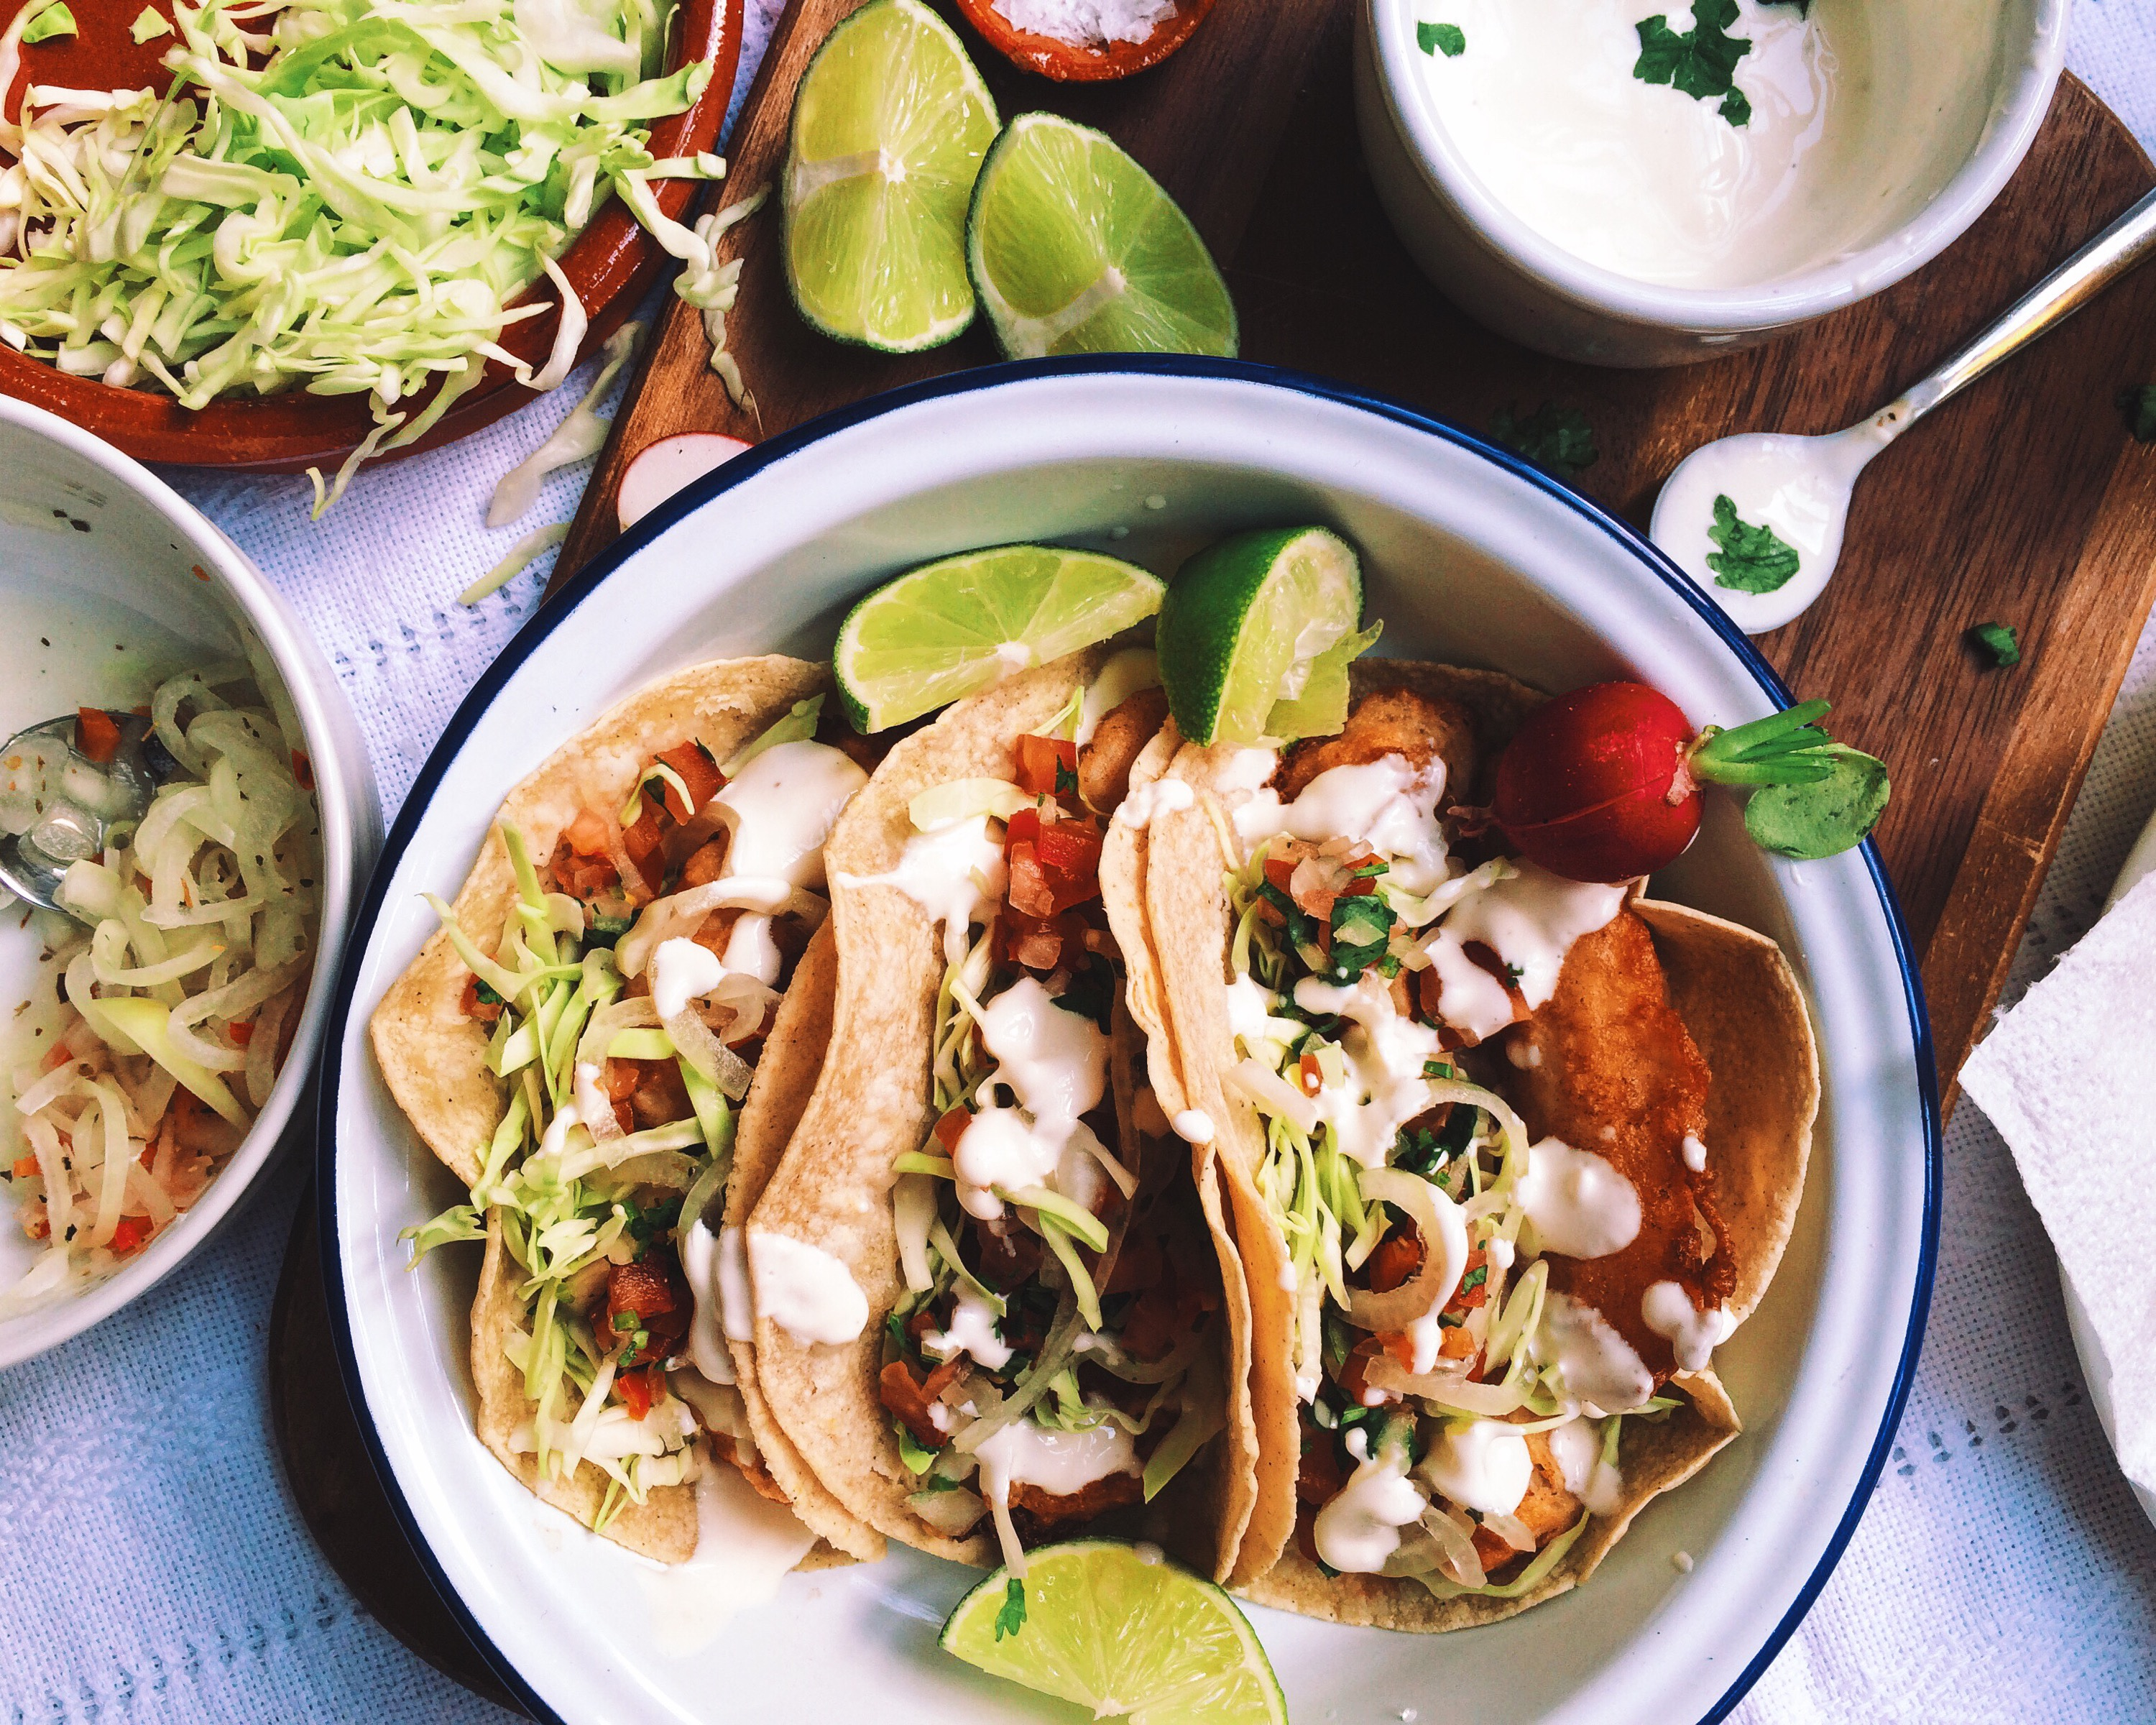 Cooking comadres ensenada style menu for Authentic fish tacos